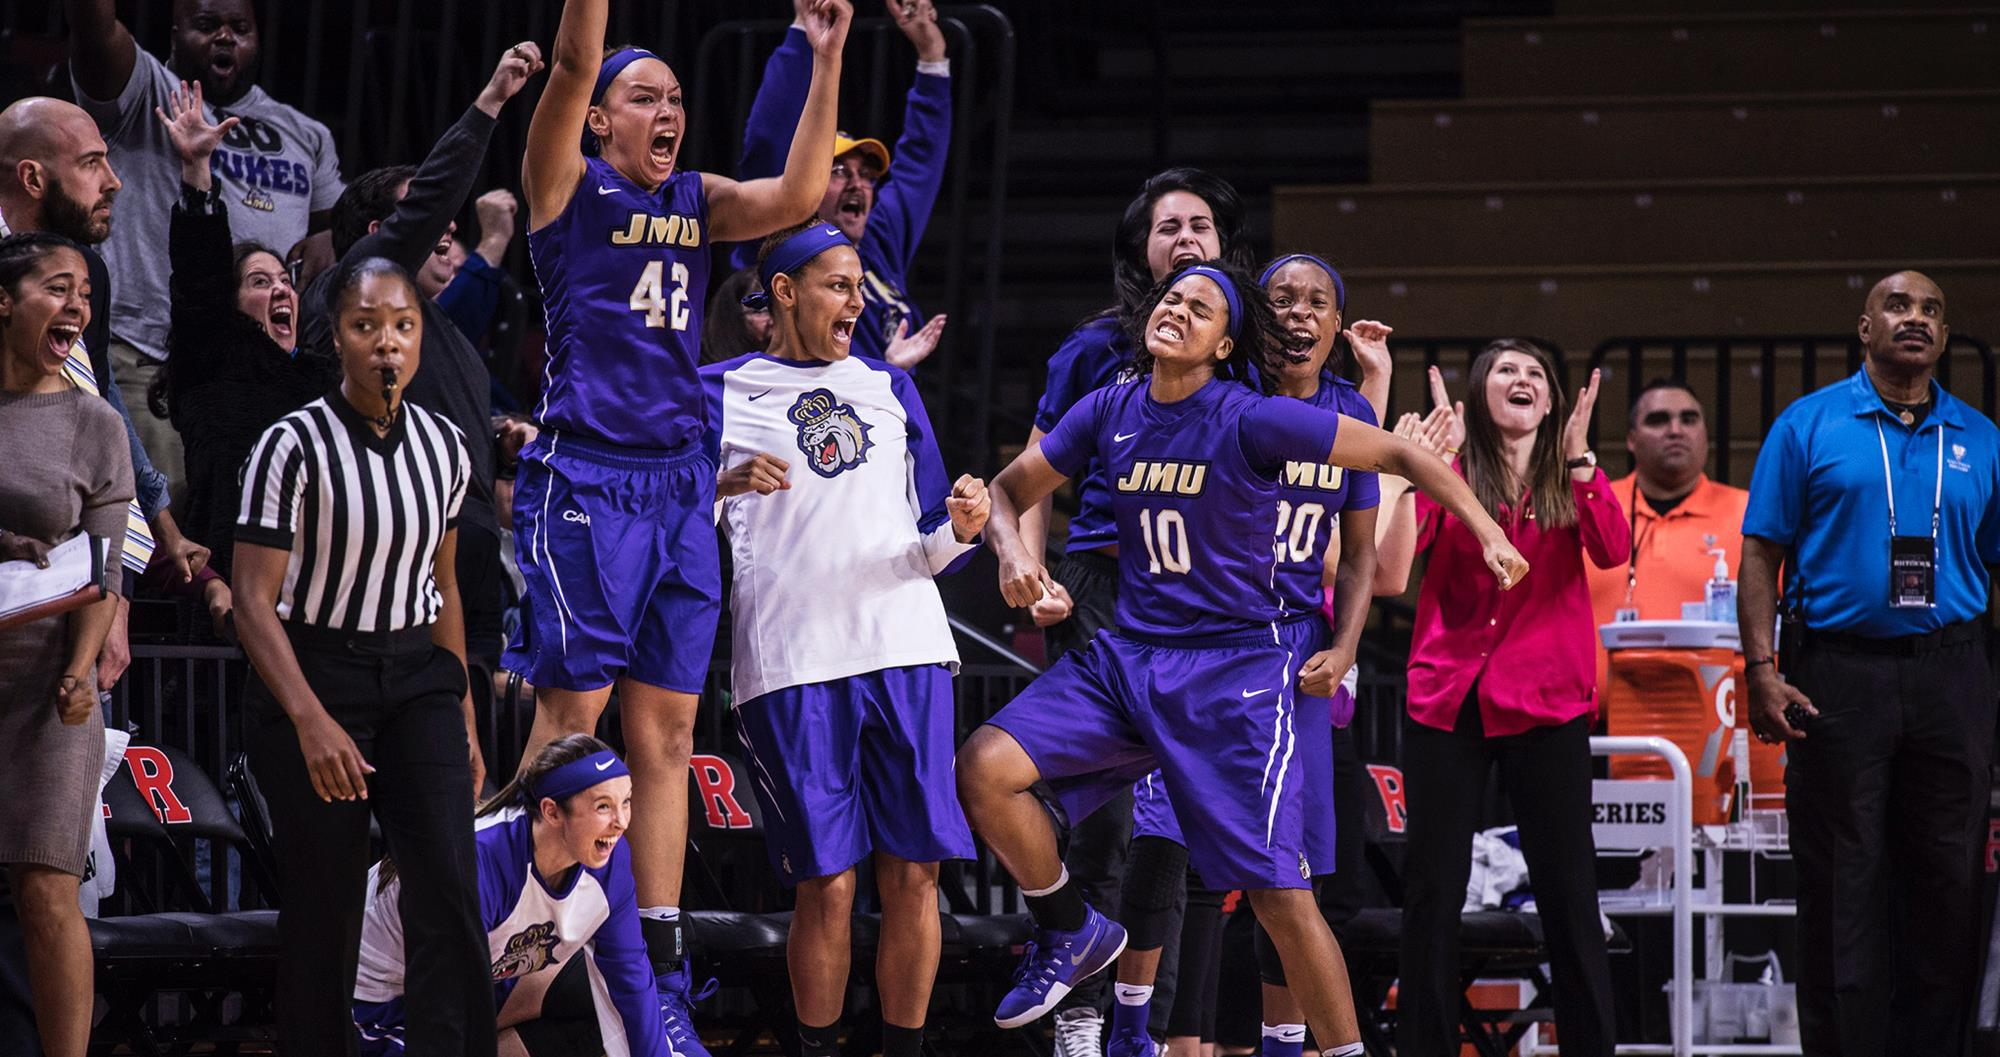 Women's Basketball: Hall's Record 46 Points Powers JMU to 82-76 Double OT Win at Rutgers